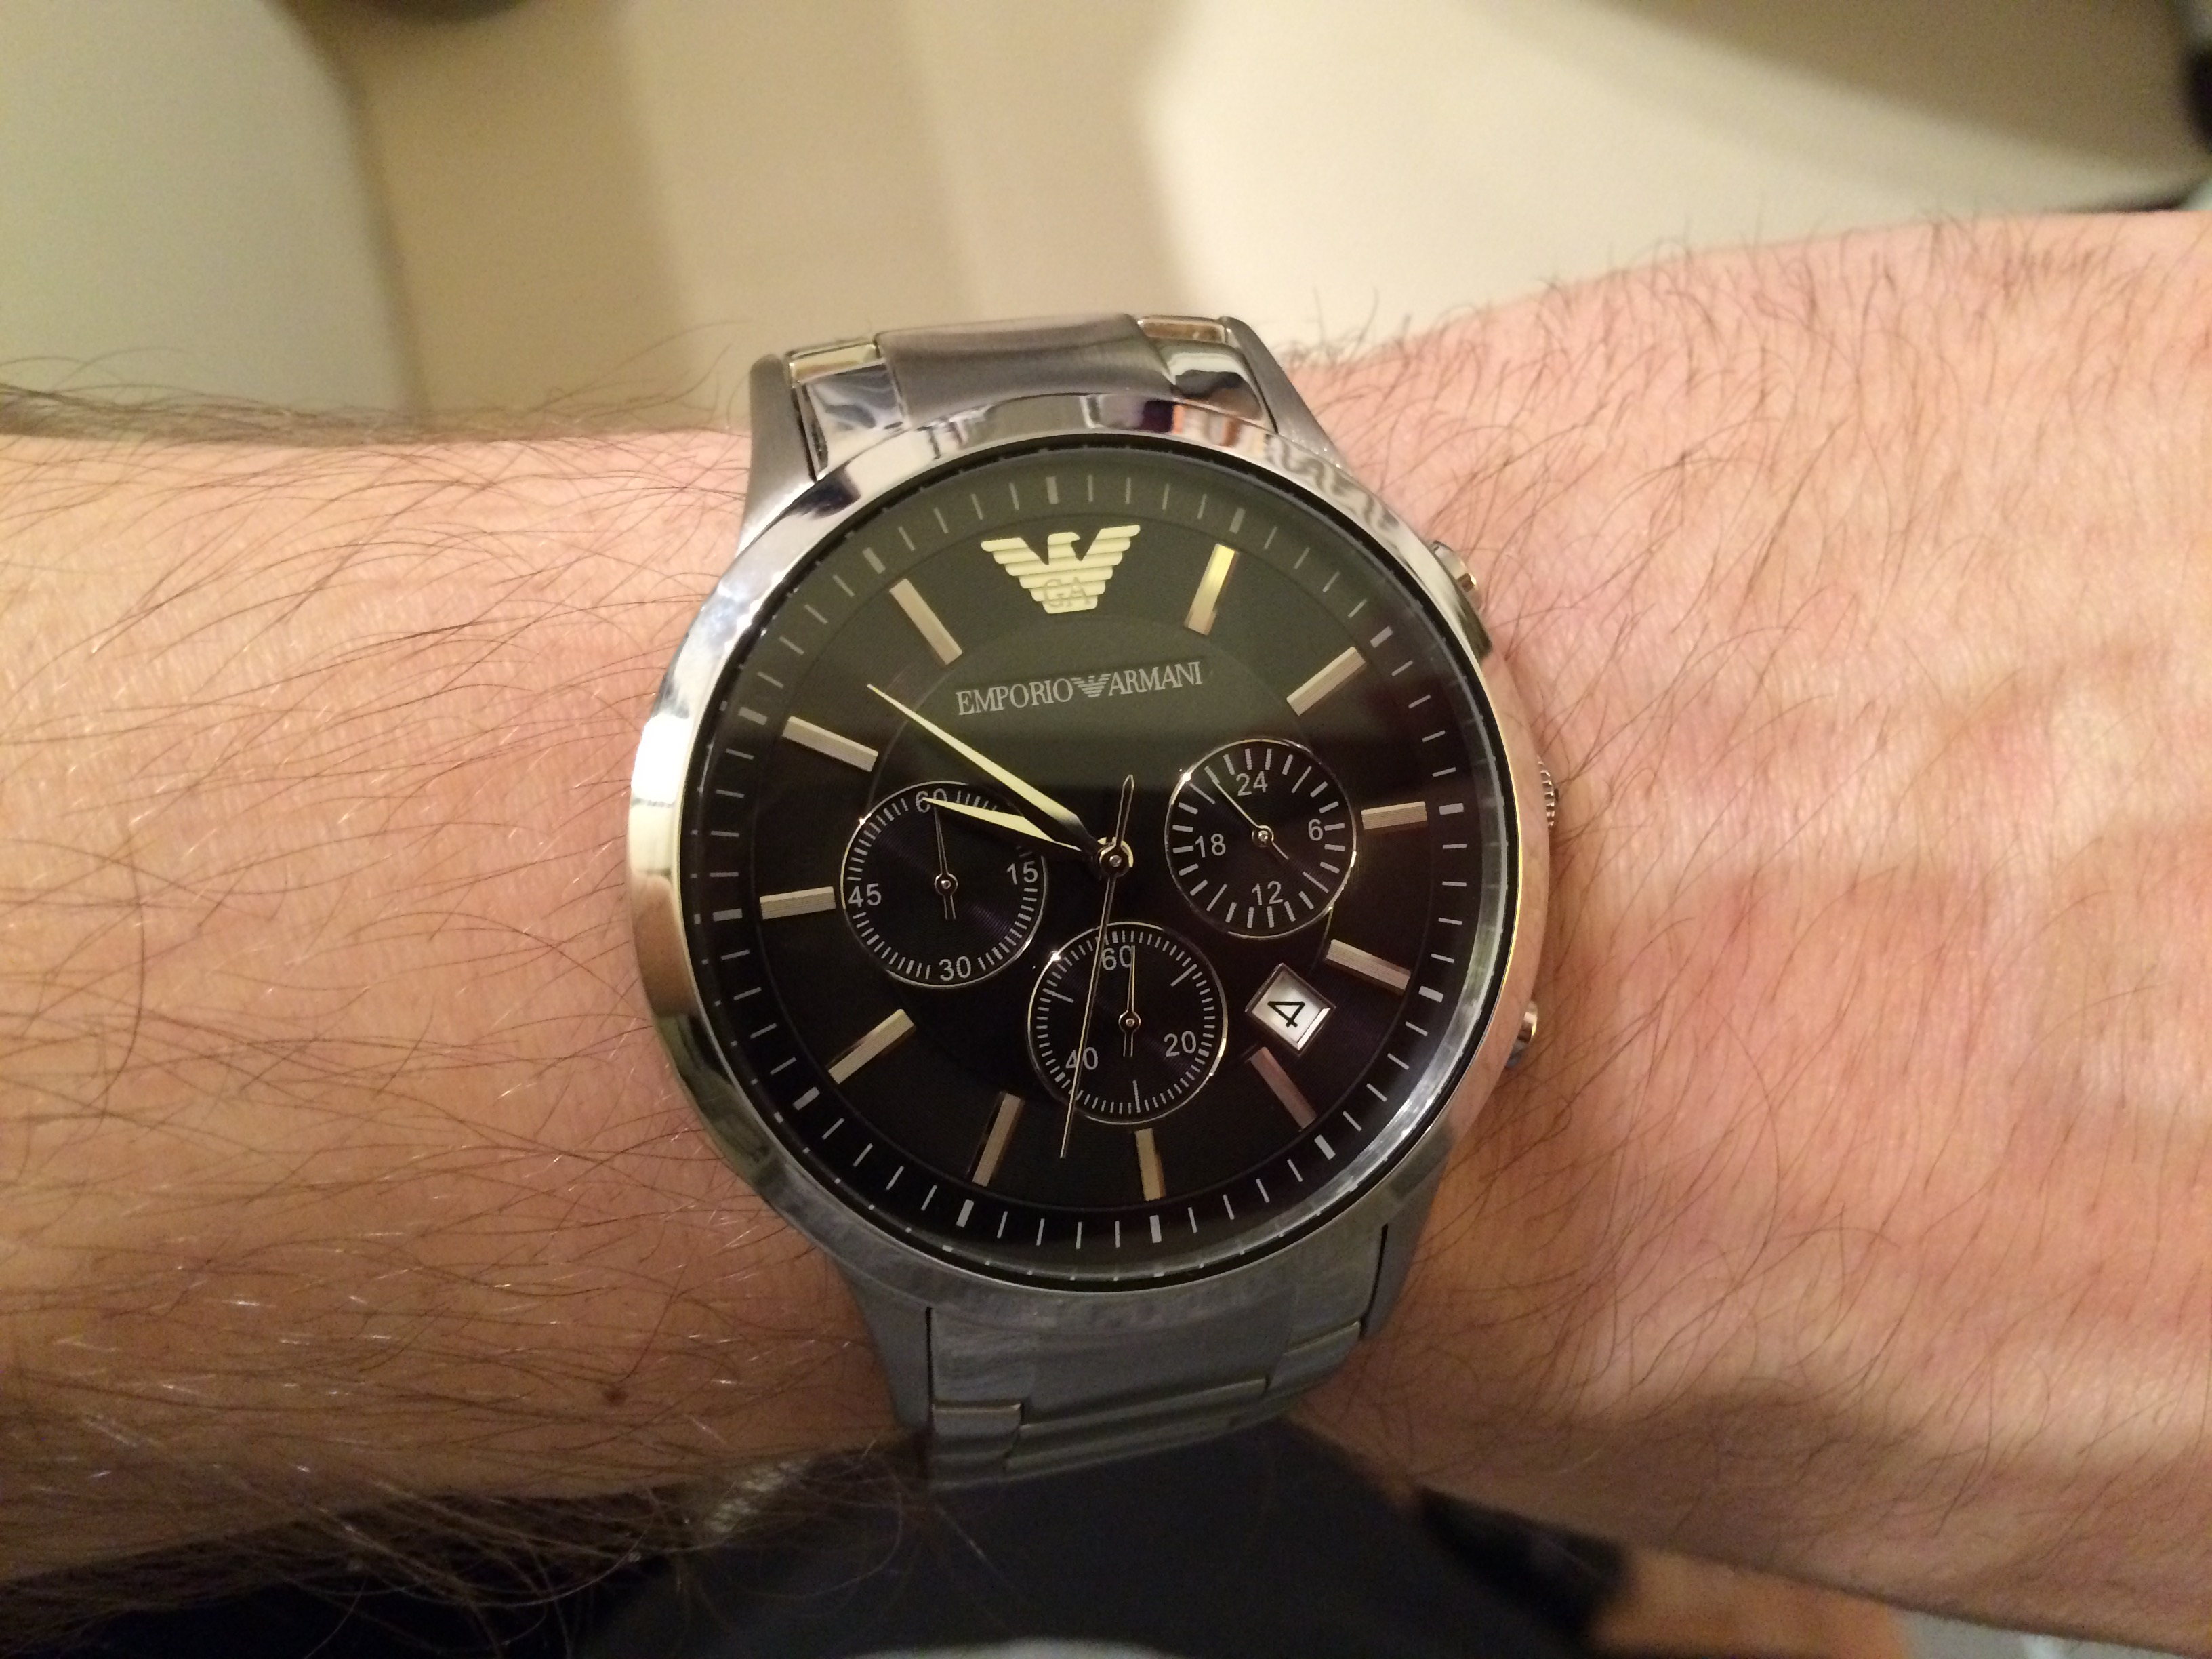 f74b7bbedcac The watch is perfect